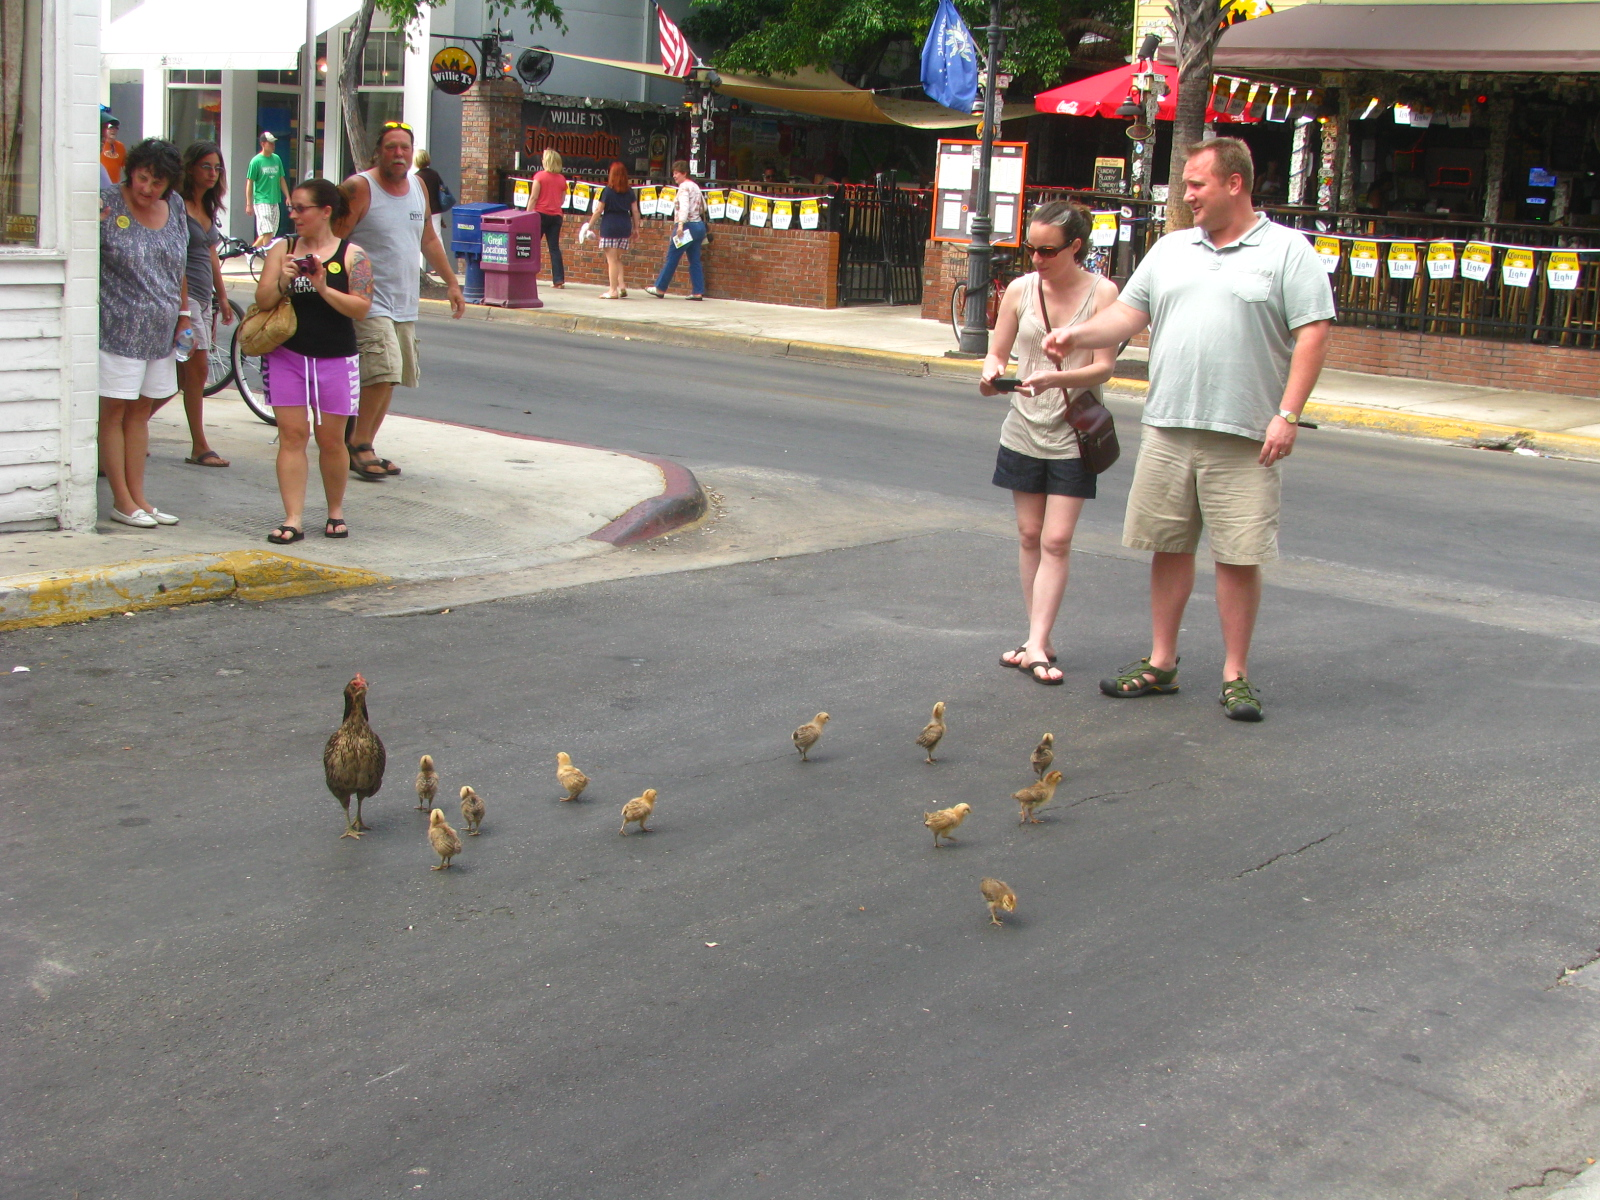 Key West Diary: Key West Chickens